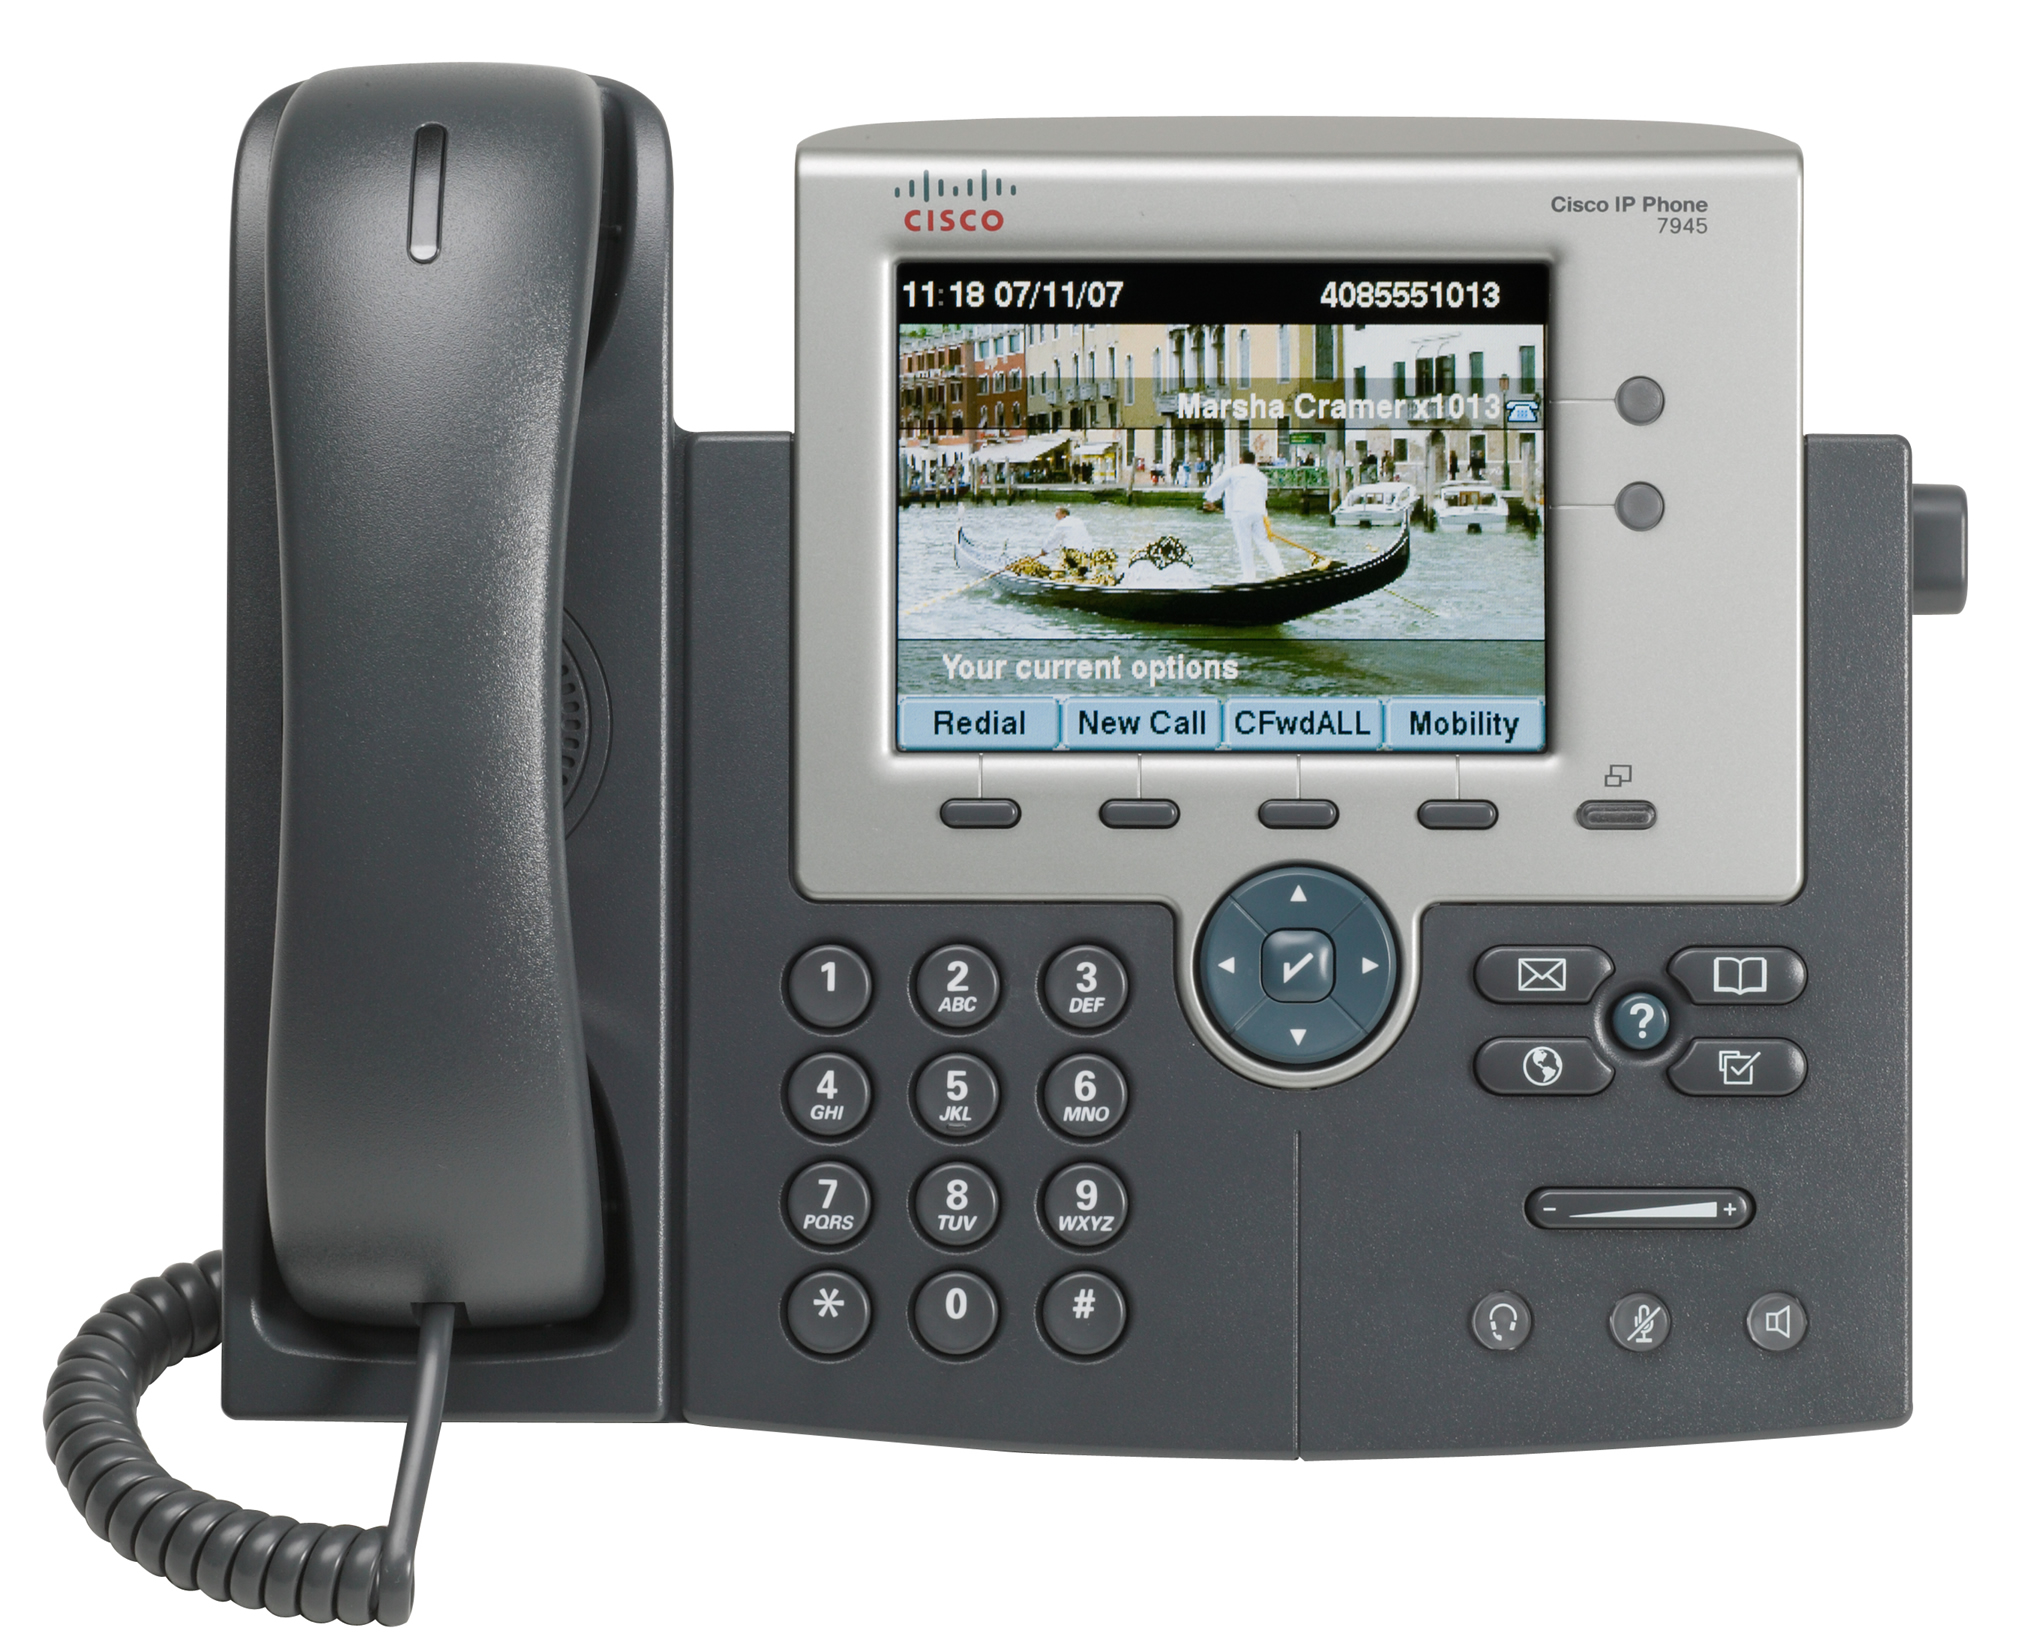 The VoIP Market Dominant Cisco 7945 - Image 1